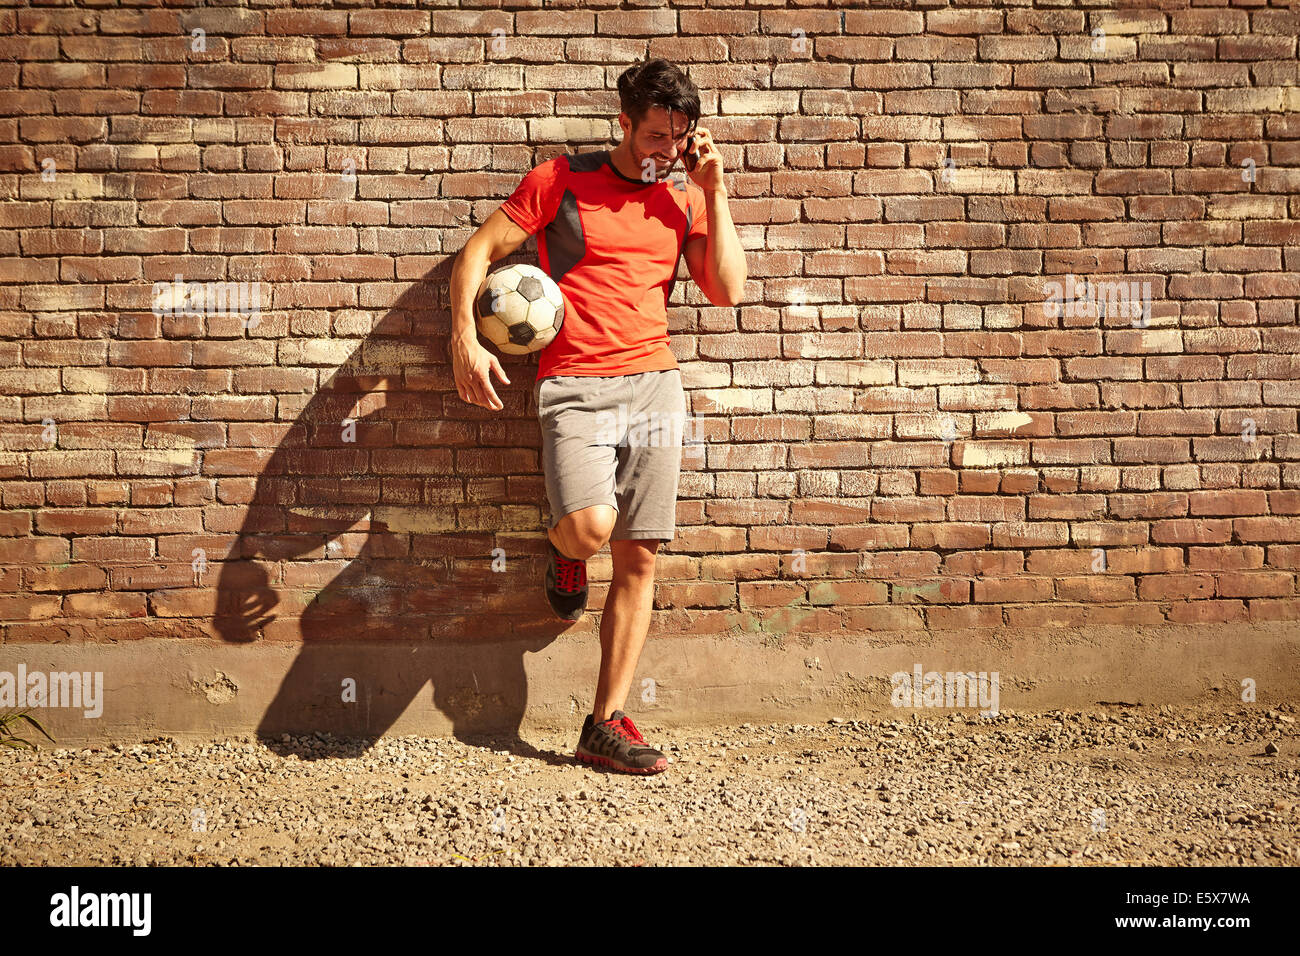 Young male soccer player chatting on smartphone on wasteland - Stock Image